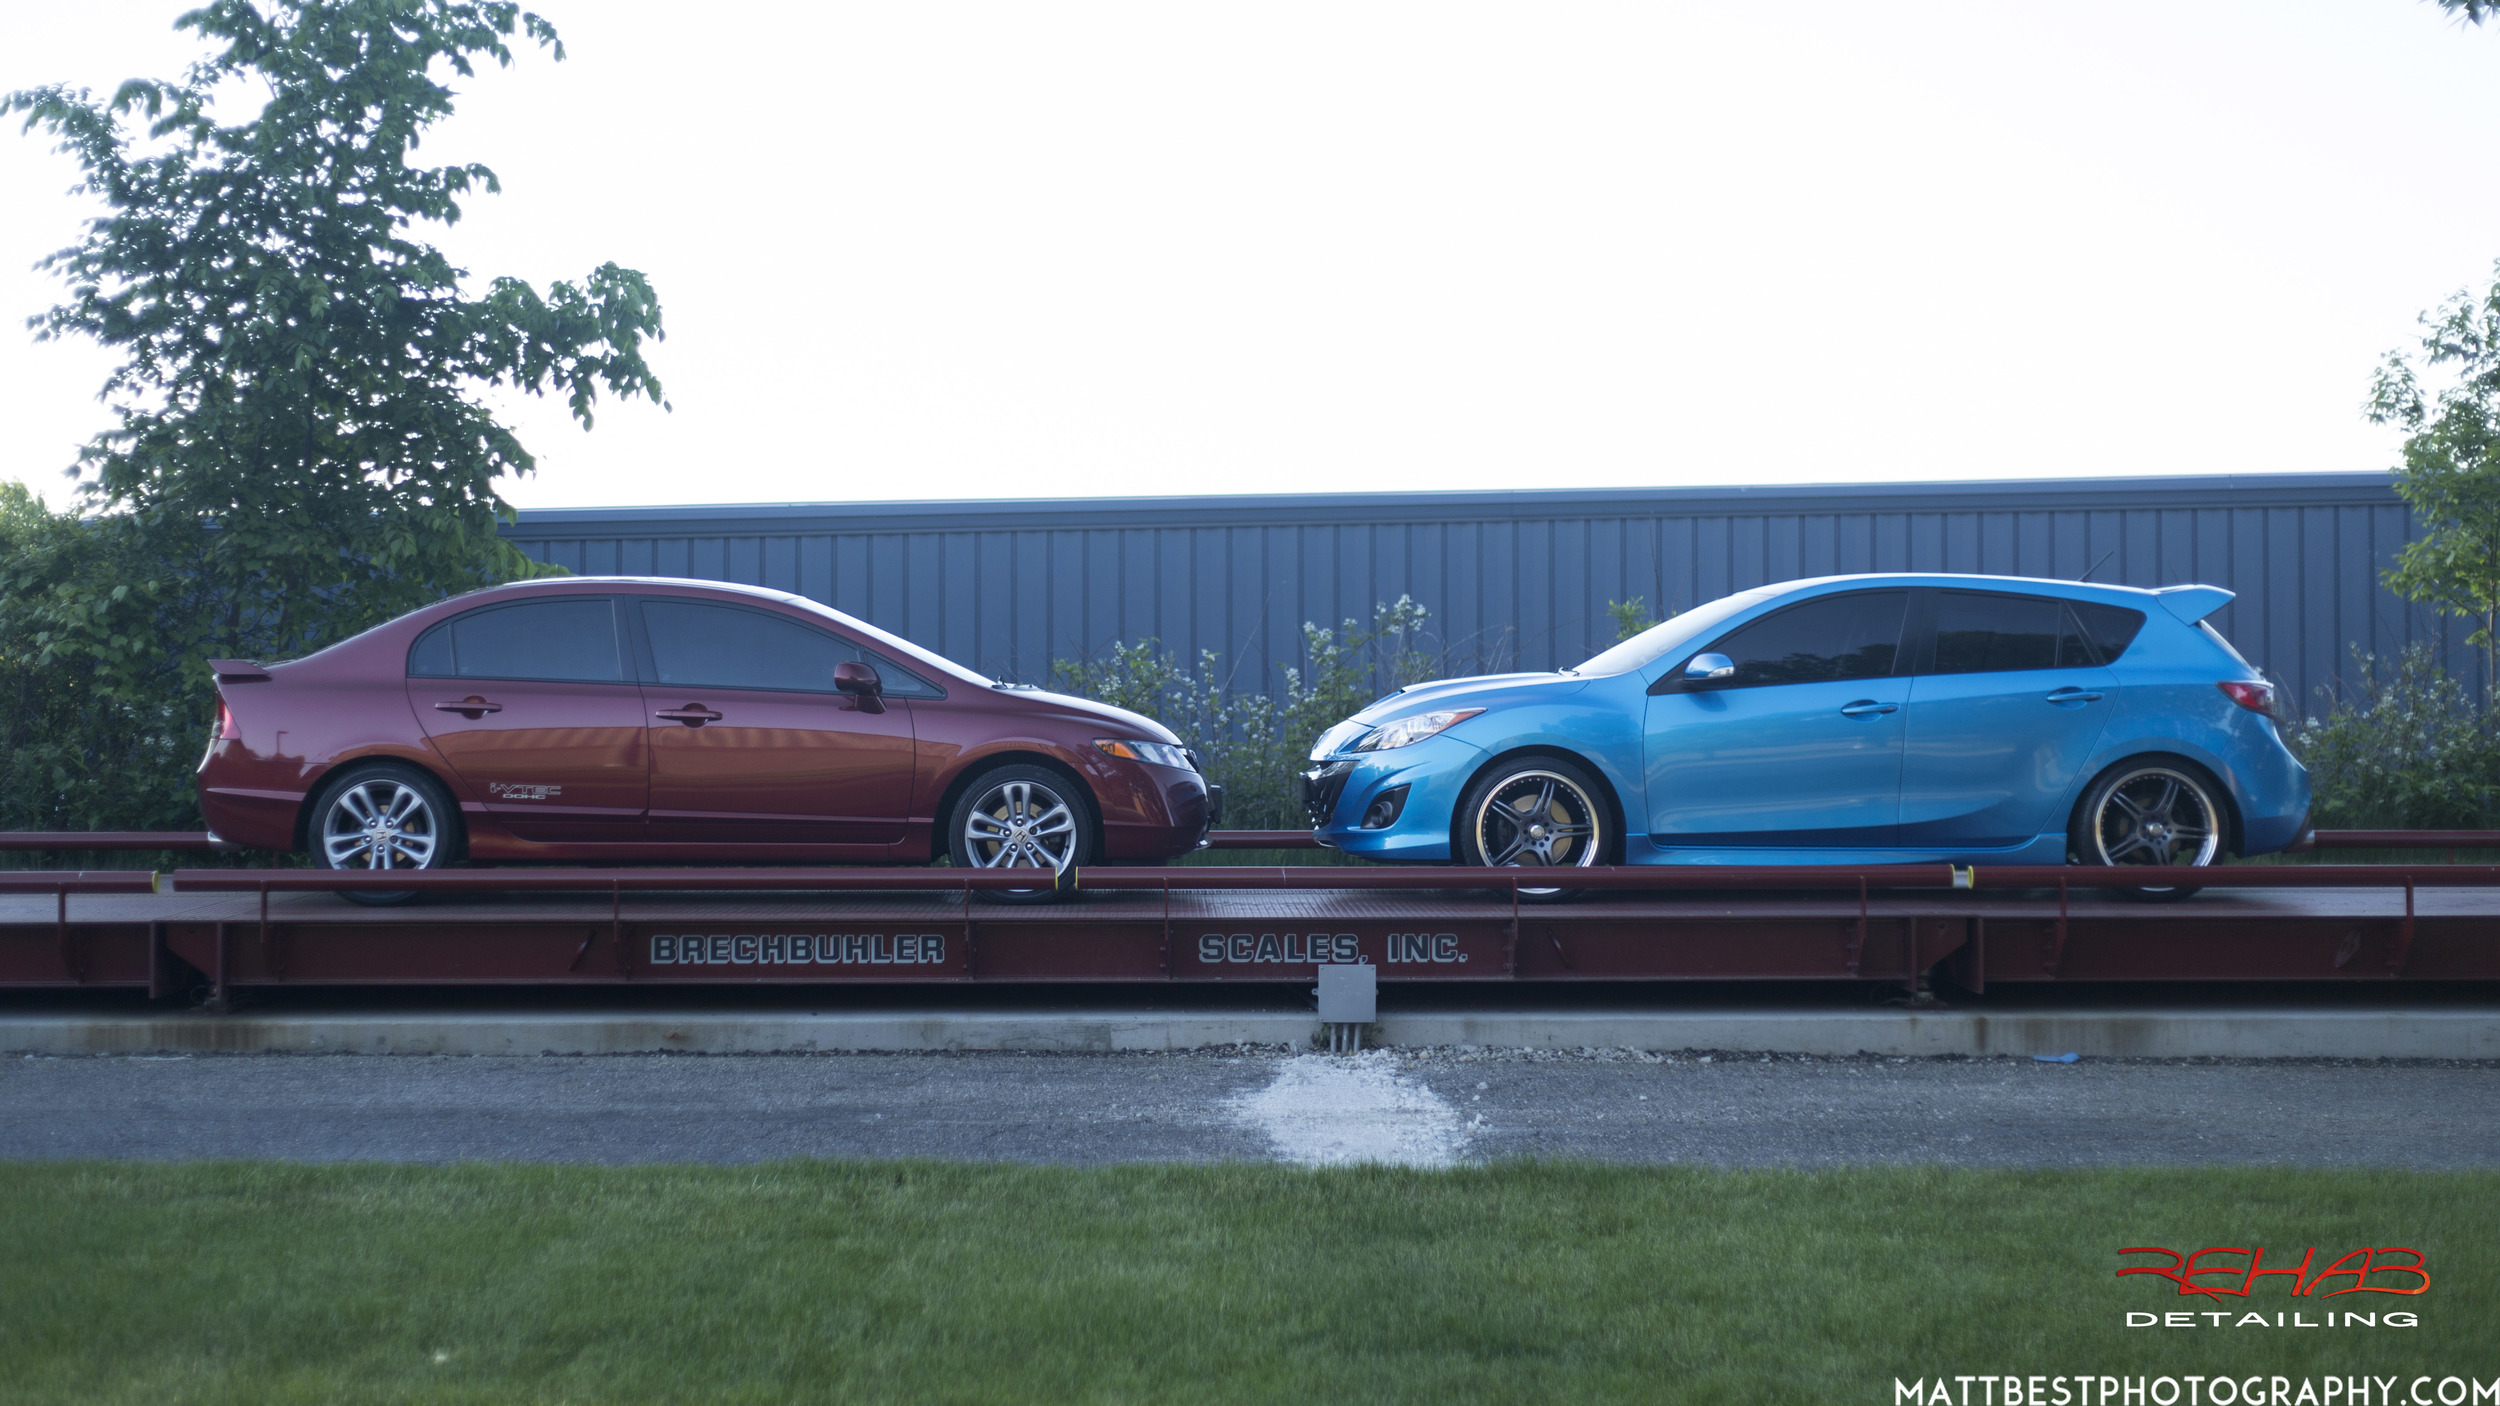 The blue Mazdaspeed 3 is tinted with 20% all the way around, the red Honda Civic Si is tinted with 35% all the way around